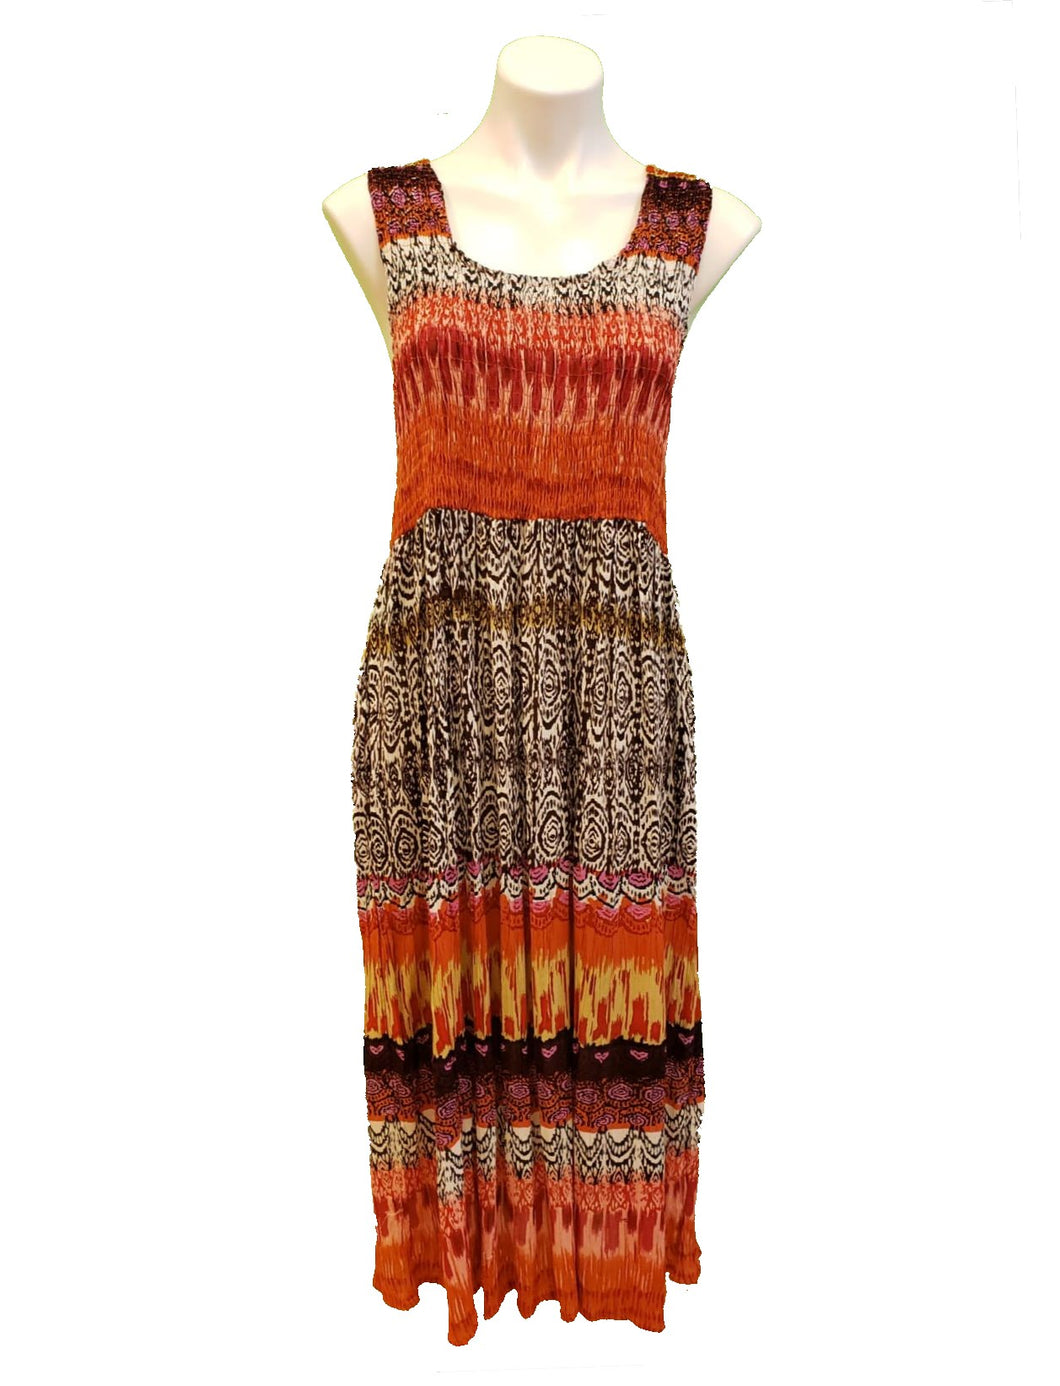 Sundress - Style 29 - CeCe Fashion Boutique